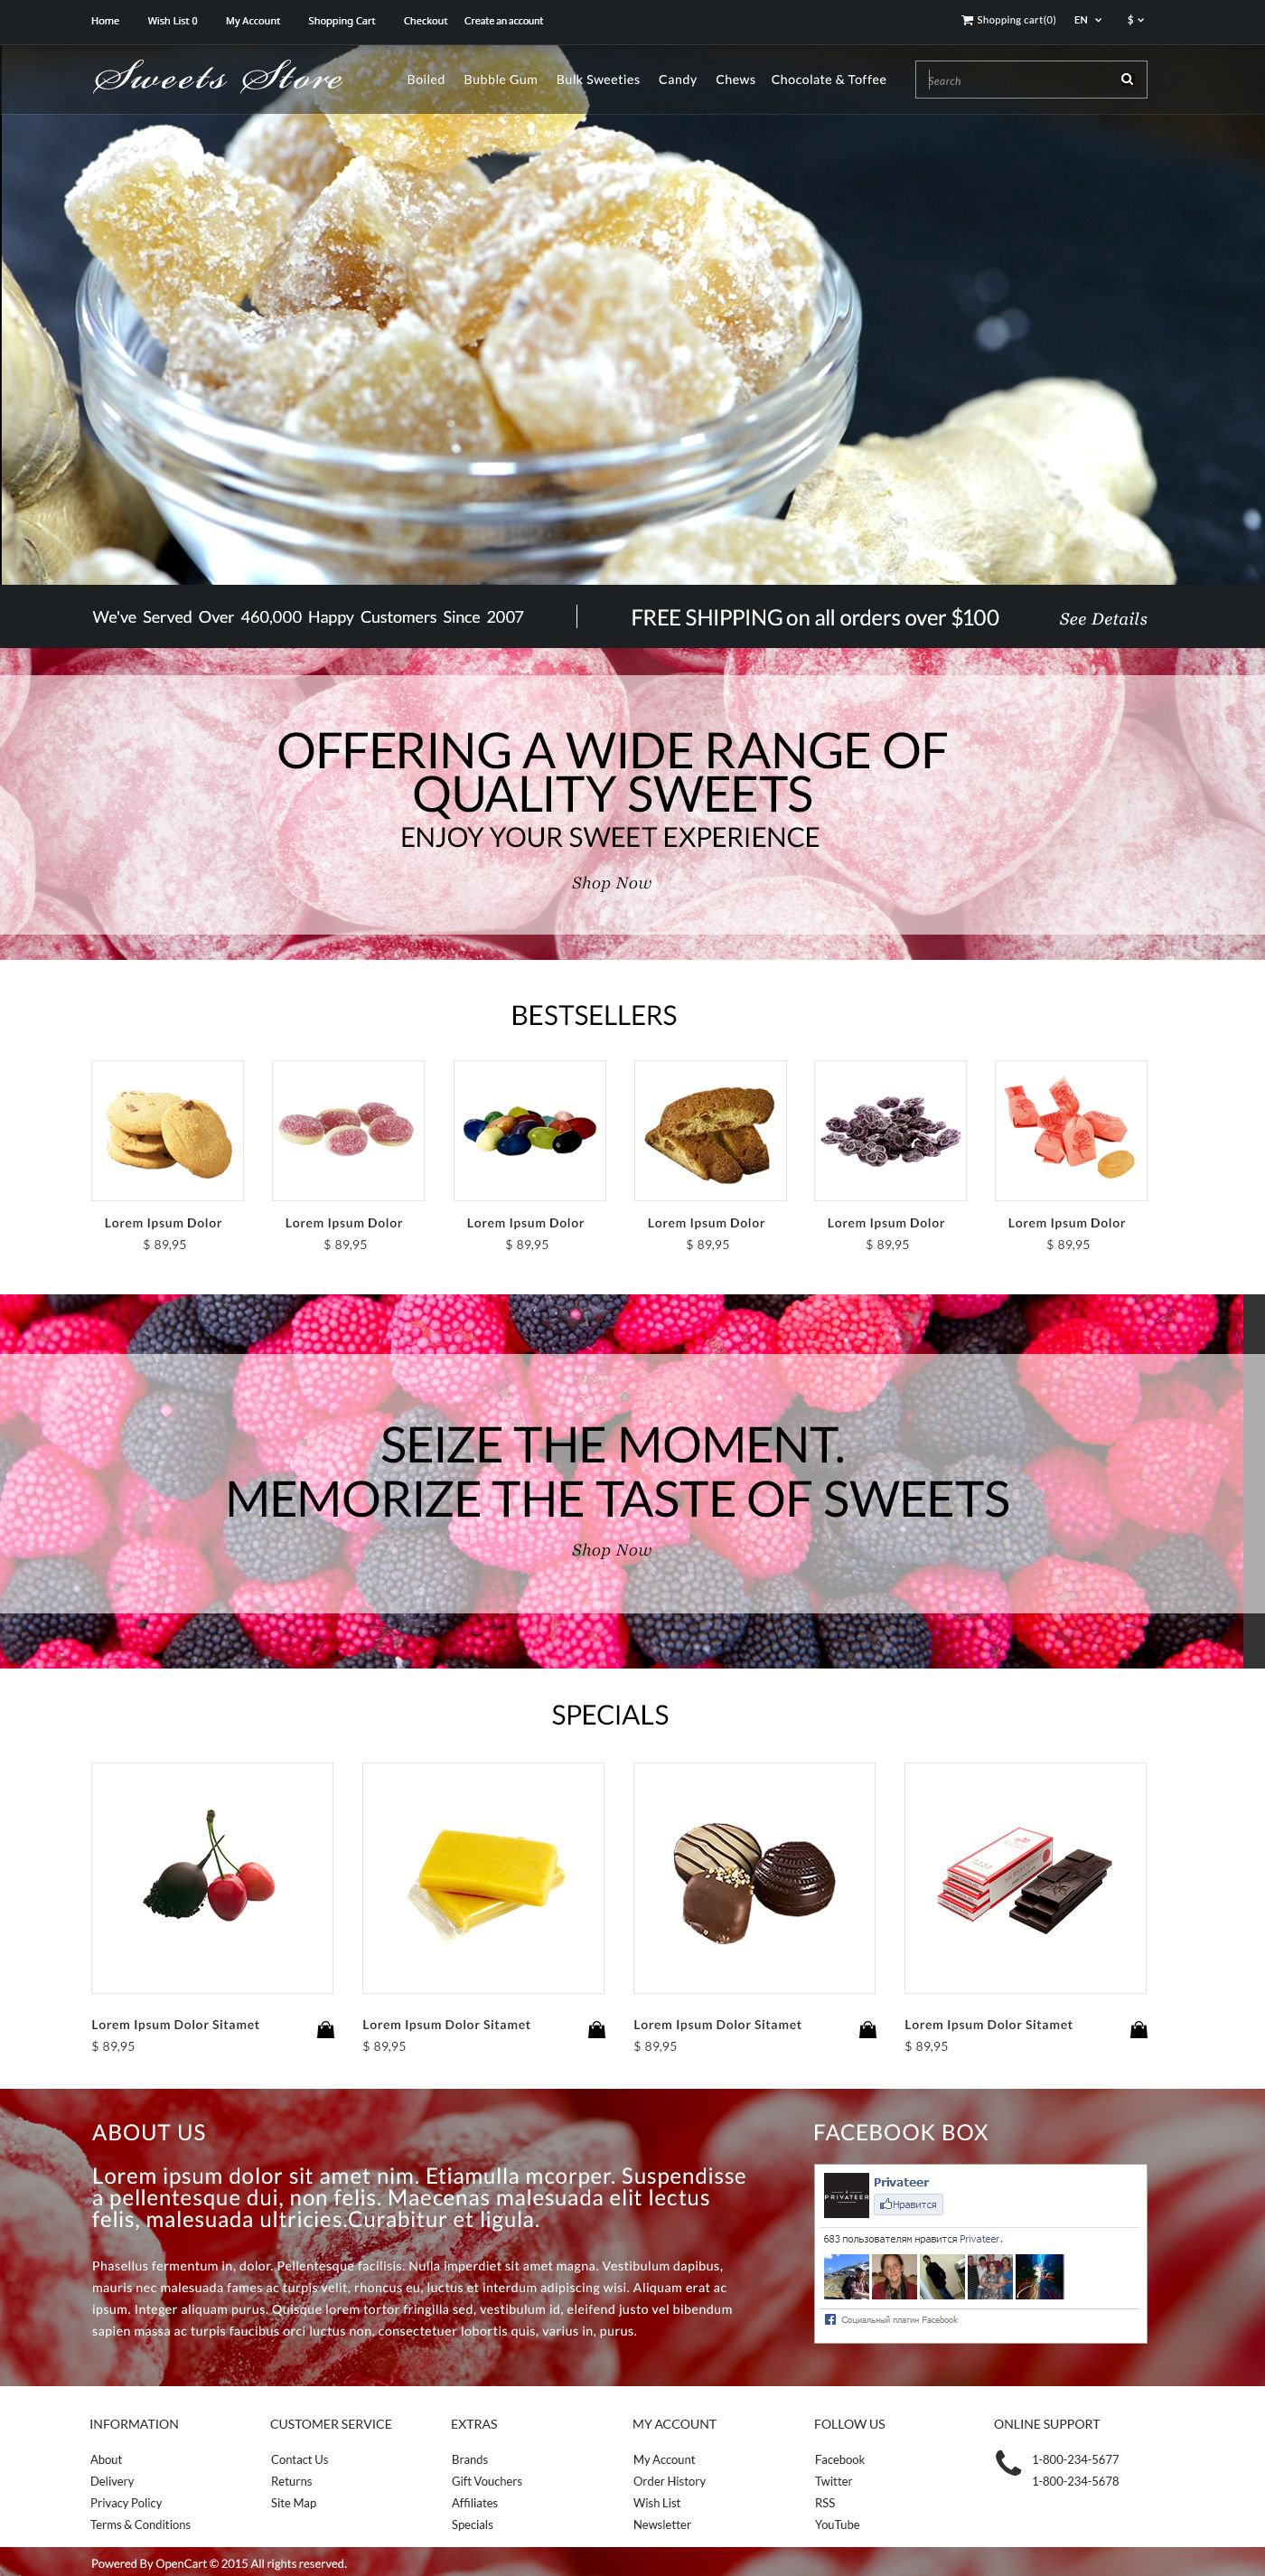 The Sweet Life OpenCart Design 53553, one of the best OpenCart templates of its kind (food & drink, most popular), also known as sweet life OpenCart template, sweets OpenCart template, house OpenCart template, candy store OpenCart template, chocolate OpenCart template, candy OpenCart template, nuts OpenCart template, raisin OpenCart template, products OpenCart template, services OpenCart template, order OpenCart template, boxed OpenCart template, chocolate OpenCart template, assortment OpenCart template, butter OpenCart template, cream OpenCart template, fruits OpenCart template, gourmet OpenCart template, pretzel OpenCart template, truffles OpenCart template, sugar OpenCart template, free gummy OpenCart template, chocolate OpenCart template, bar OpenCart template, dark milk OpenCart template, white hot chocolate OpenCart template, peanut OpenCart template, creme OpenCart template, brulee OpenCart template, ginger OpenCart template, pistachio and related with sweet life, sweets, house, candy store, chocolate, candy, nuts, raisin, products, services, order, boxed, chocolate, assortment, butter, cream, fruits, gourmet, pretzel, truffles, sugar, free gummy, chocolate, bar, dark milk, white hot chocolate, peanut, creme, brulee, ginger, pistachio, etc.